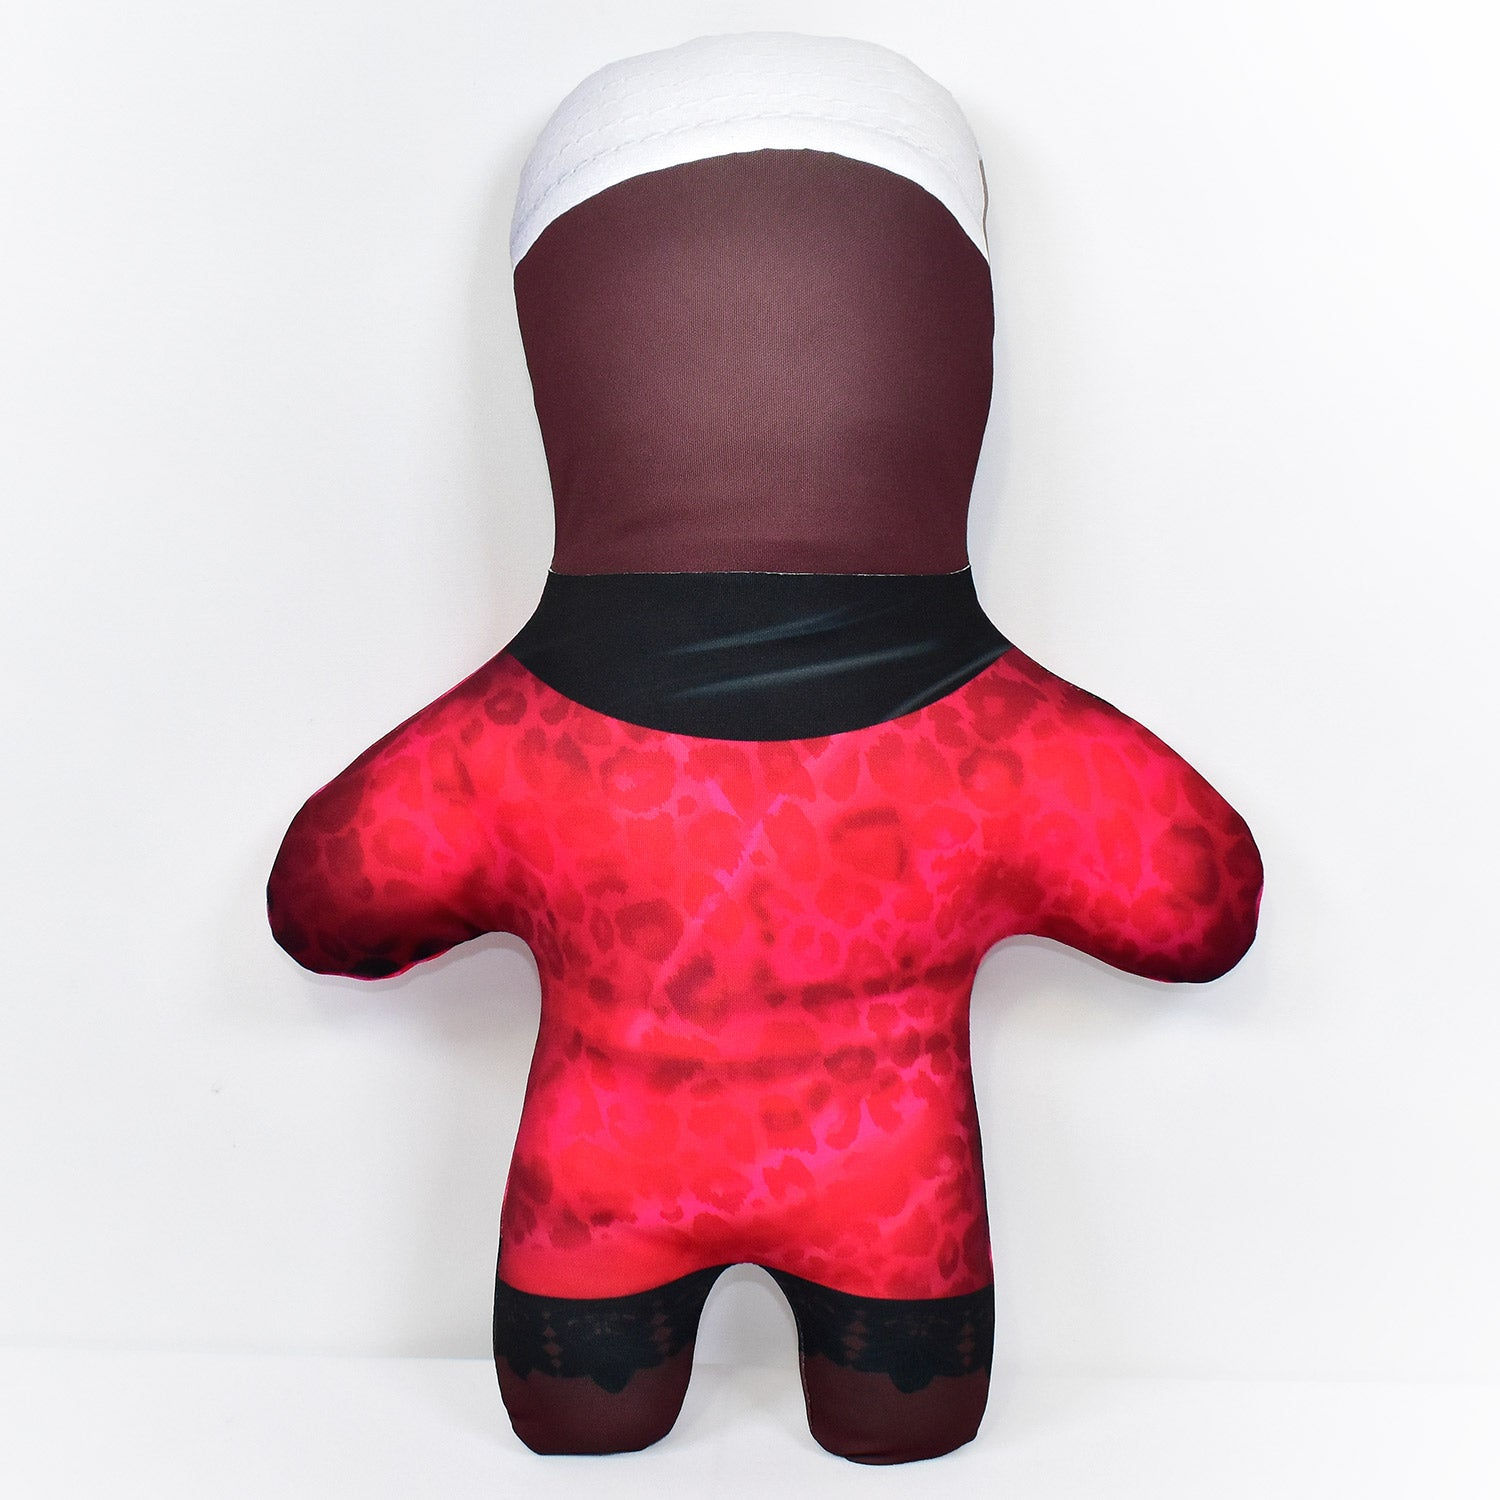 Red Silk Dressing Gown - Bedroom Sailor - 2 Skin Tones - Personalised Mini Me Doll